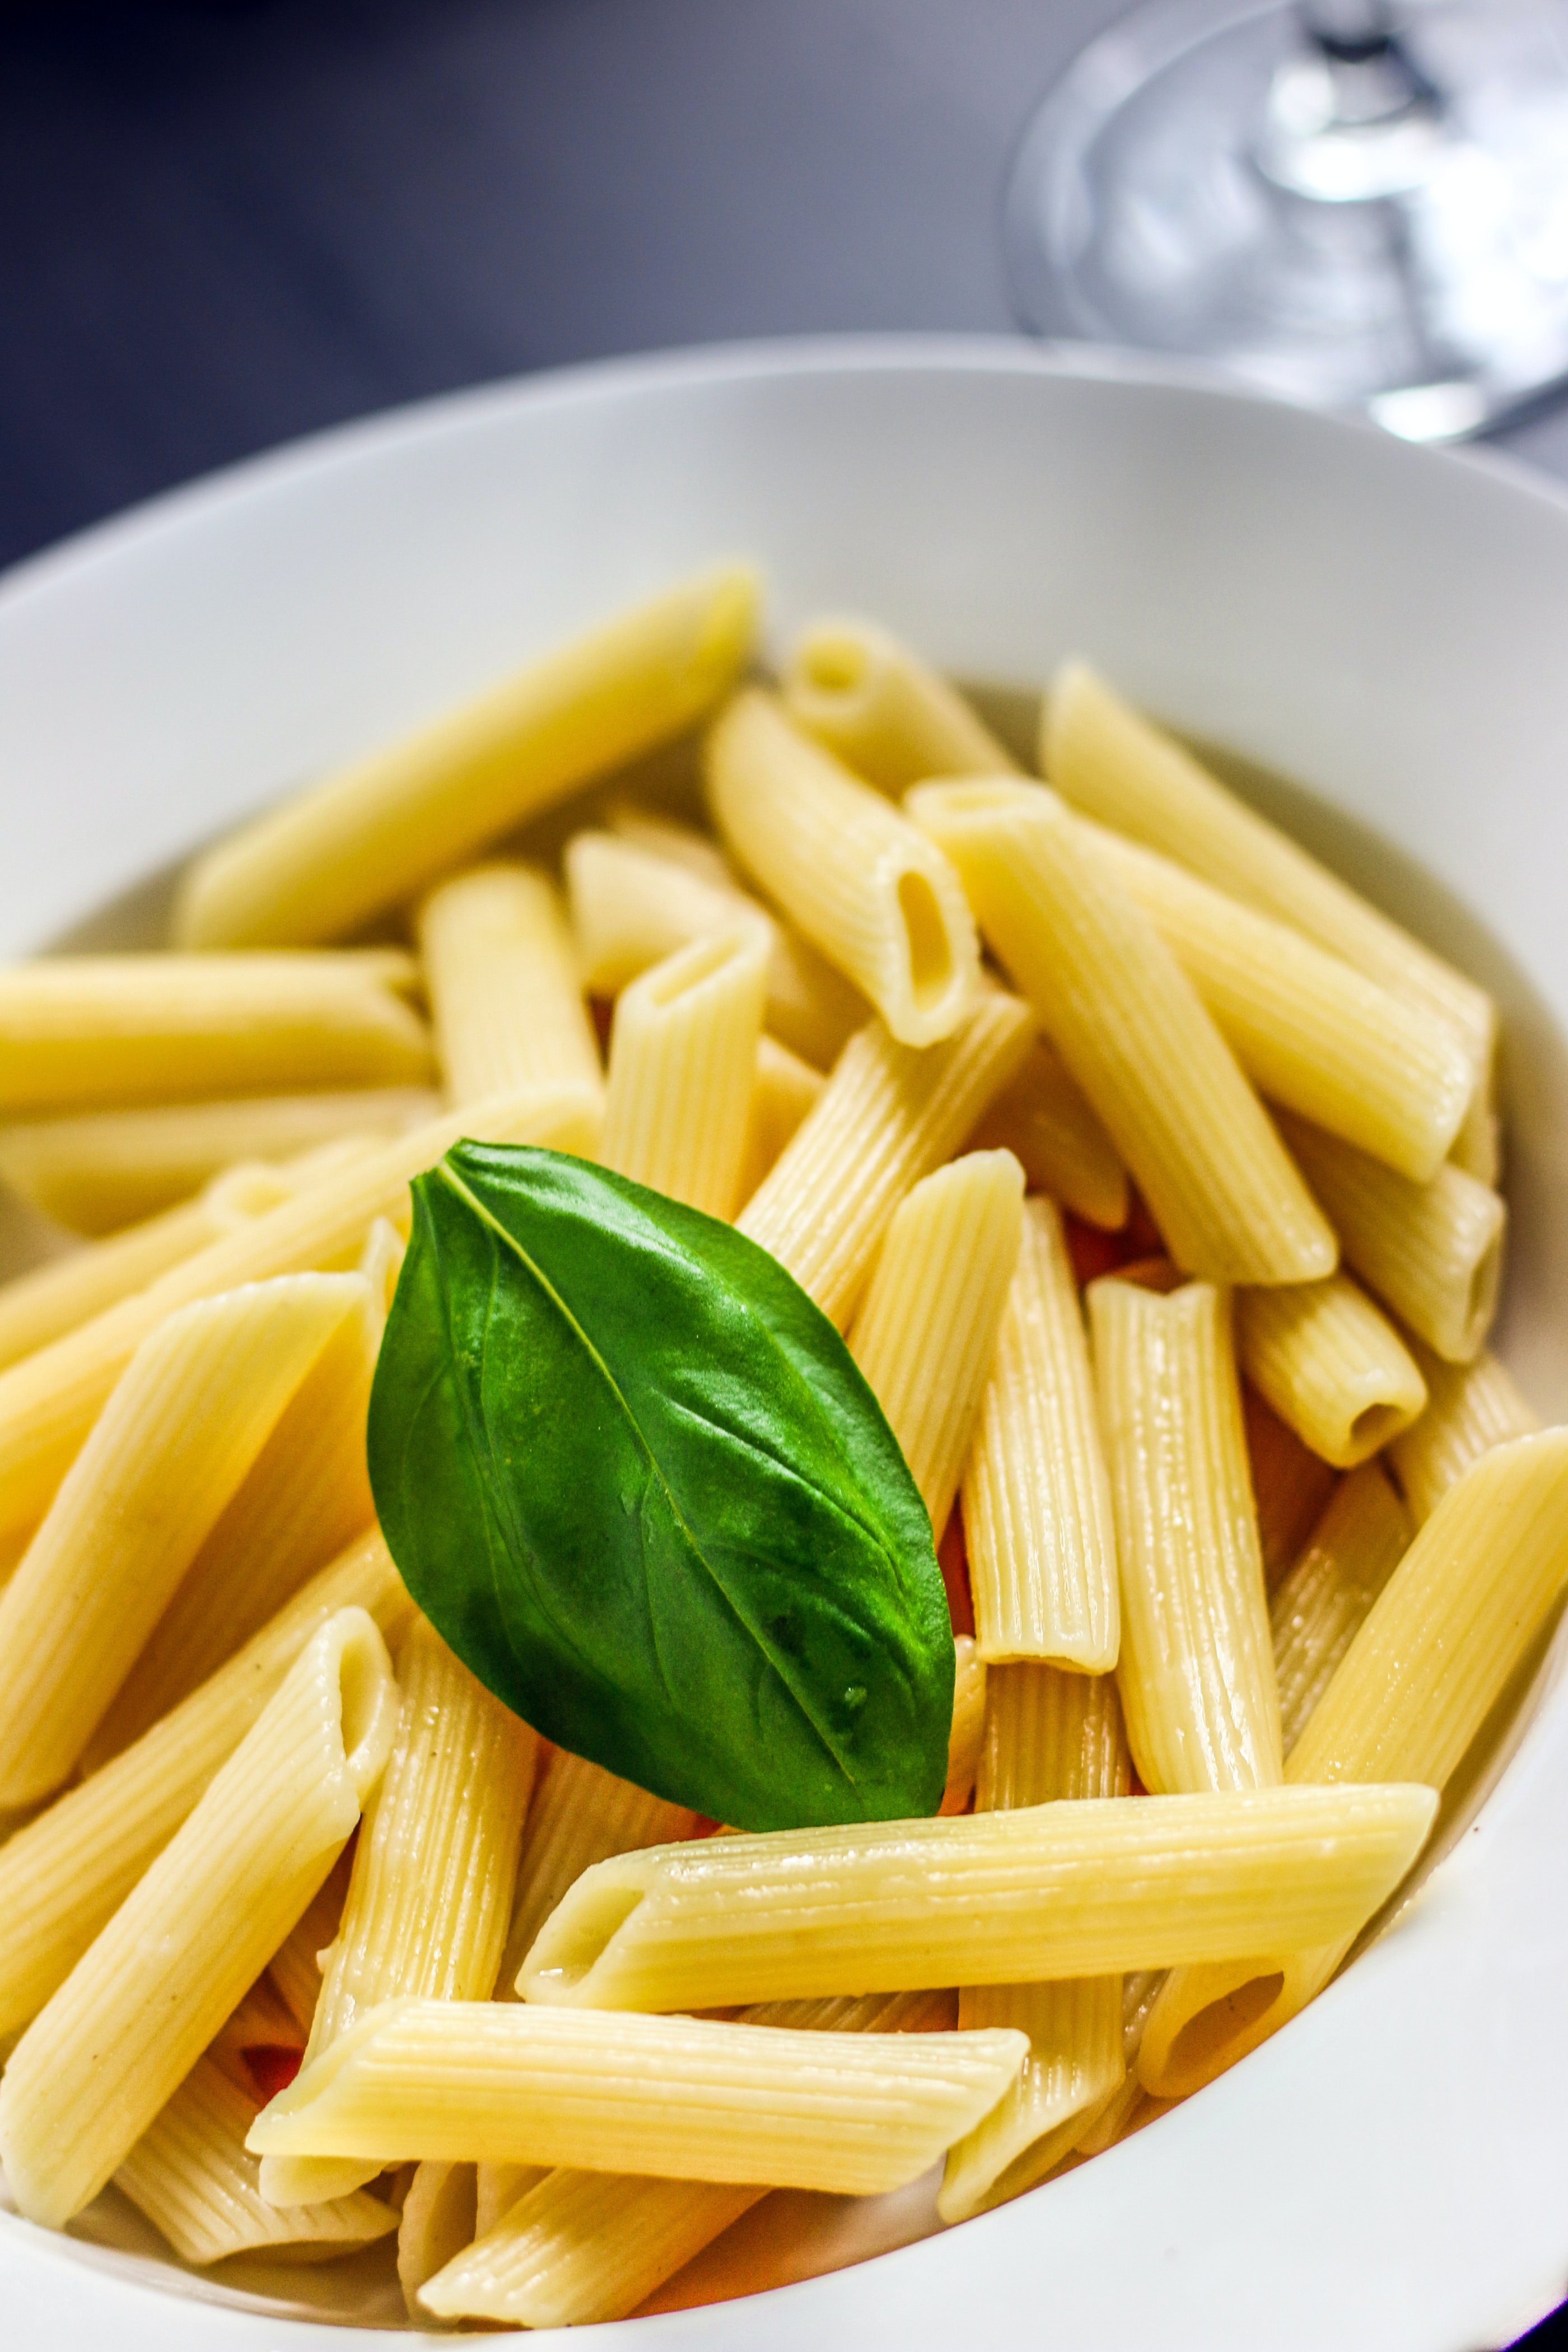 License Plate Size >> Yellow Pasta on Table · Free Stock Photo